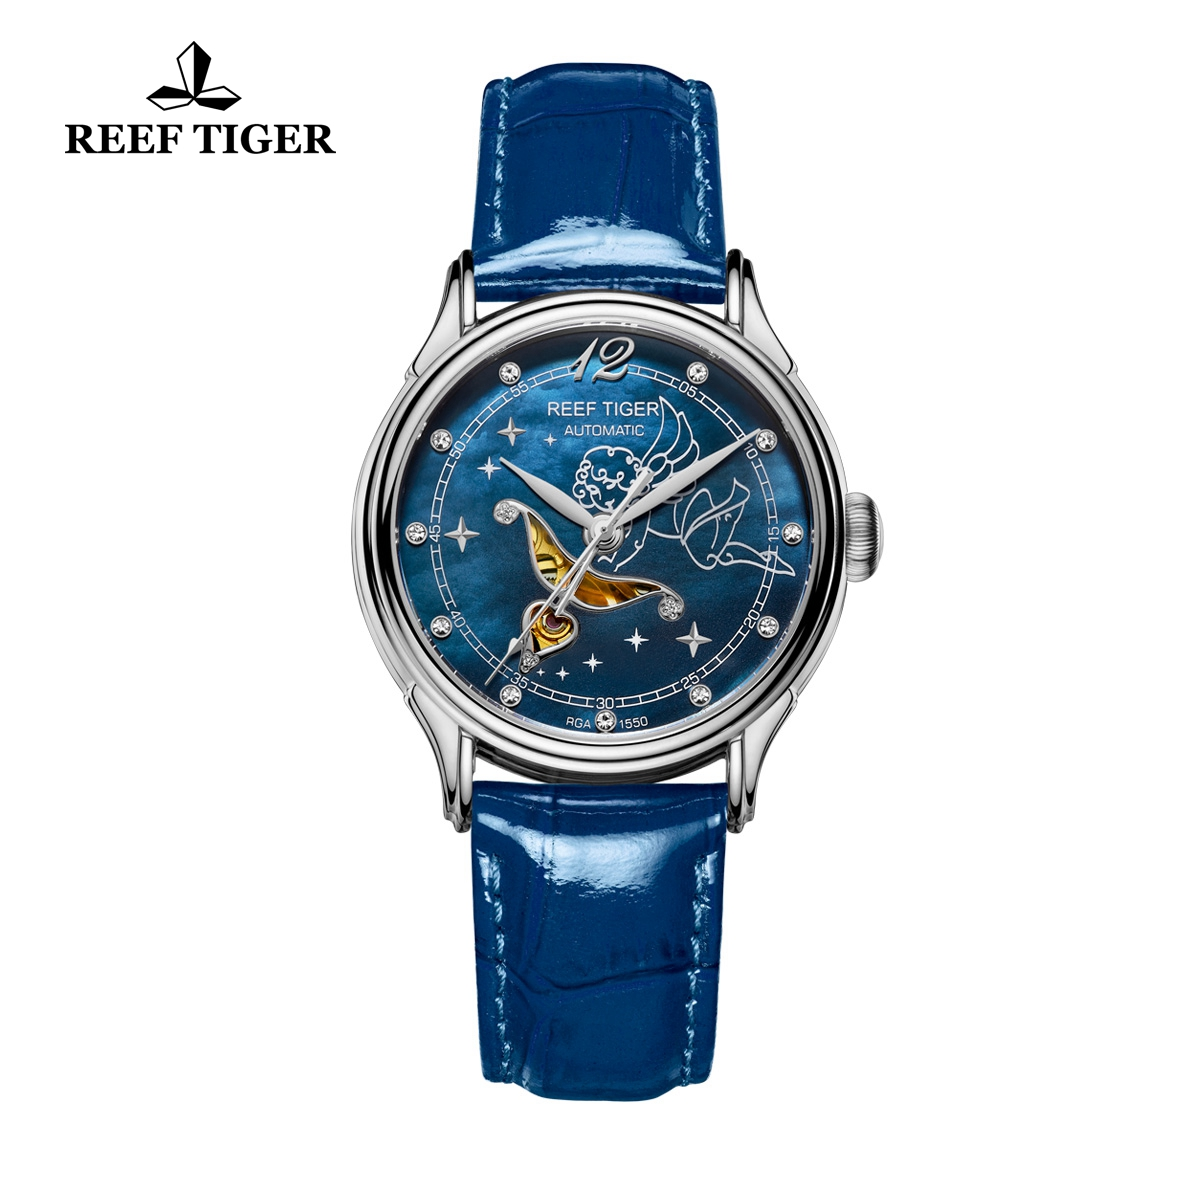 Reef Tiger Lady Fashion Steel Watch Blue MOP Dial Automatic Watch For Women RGA1550-YLL